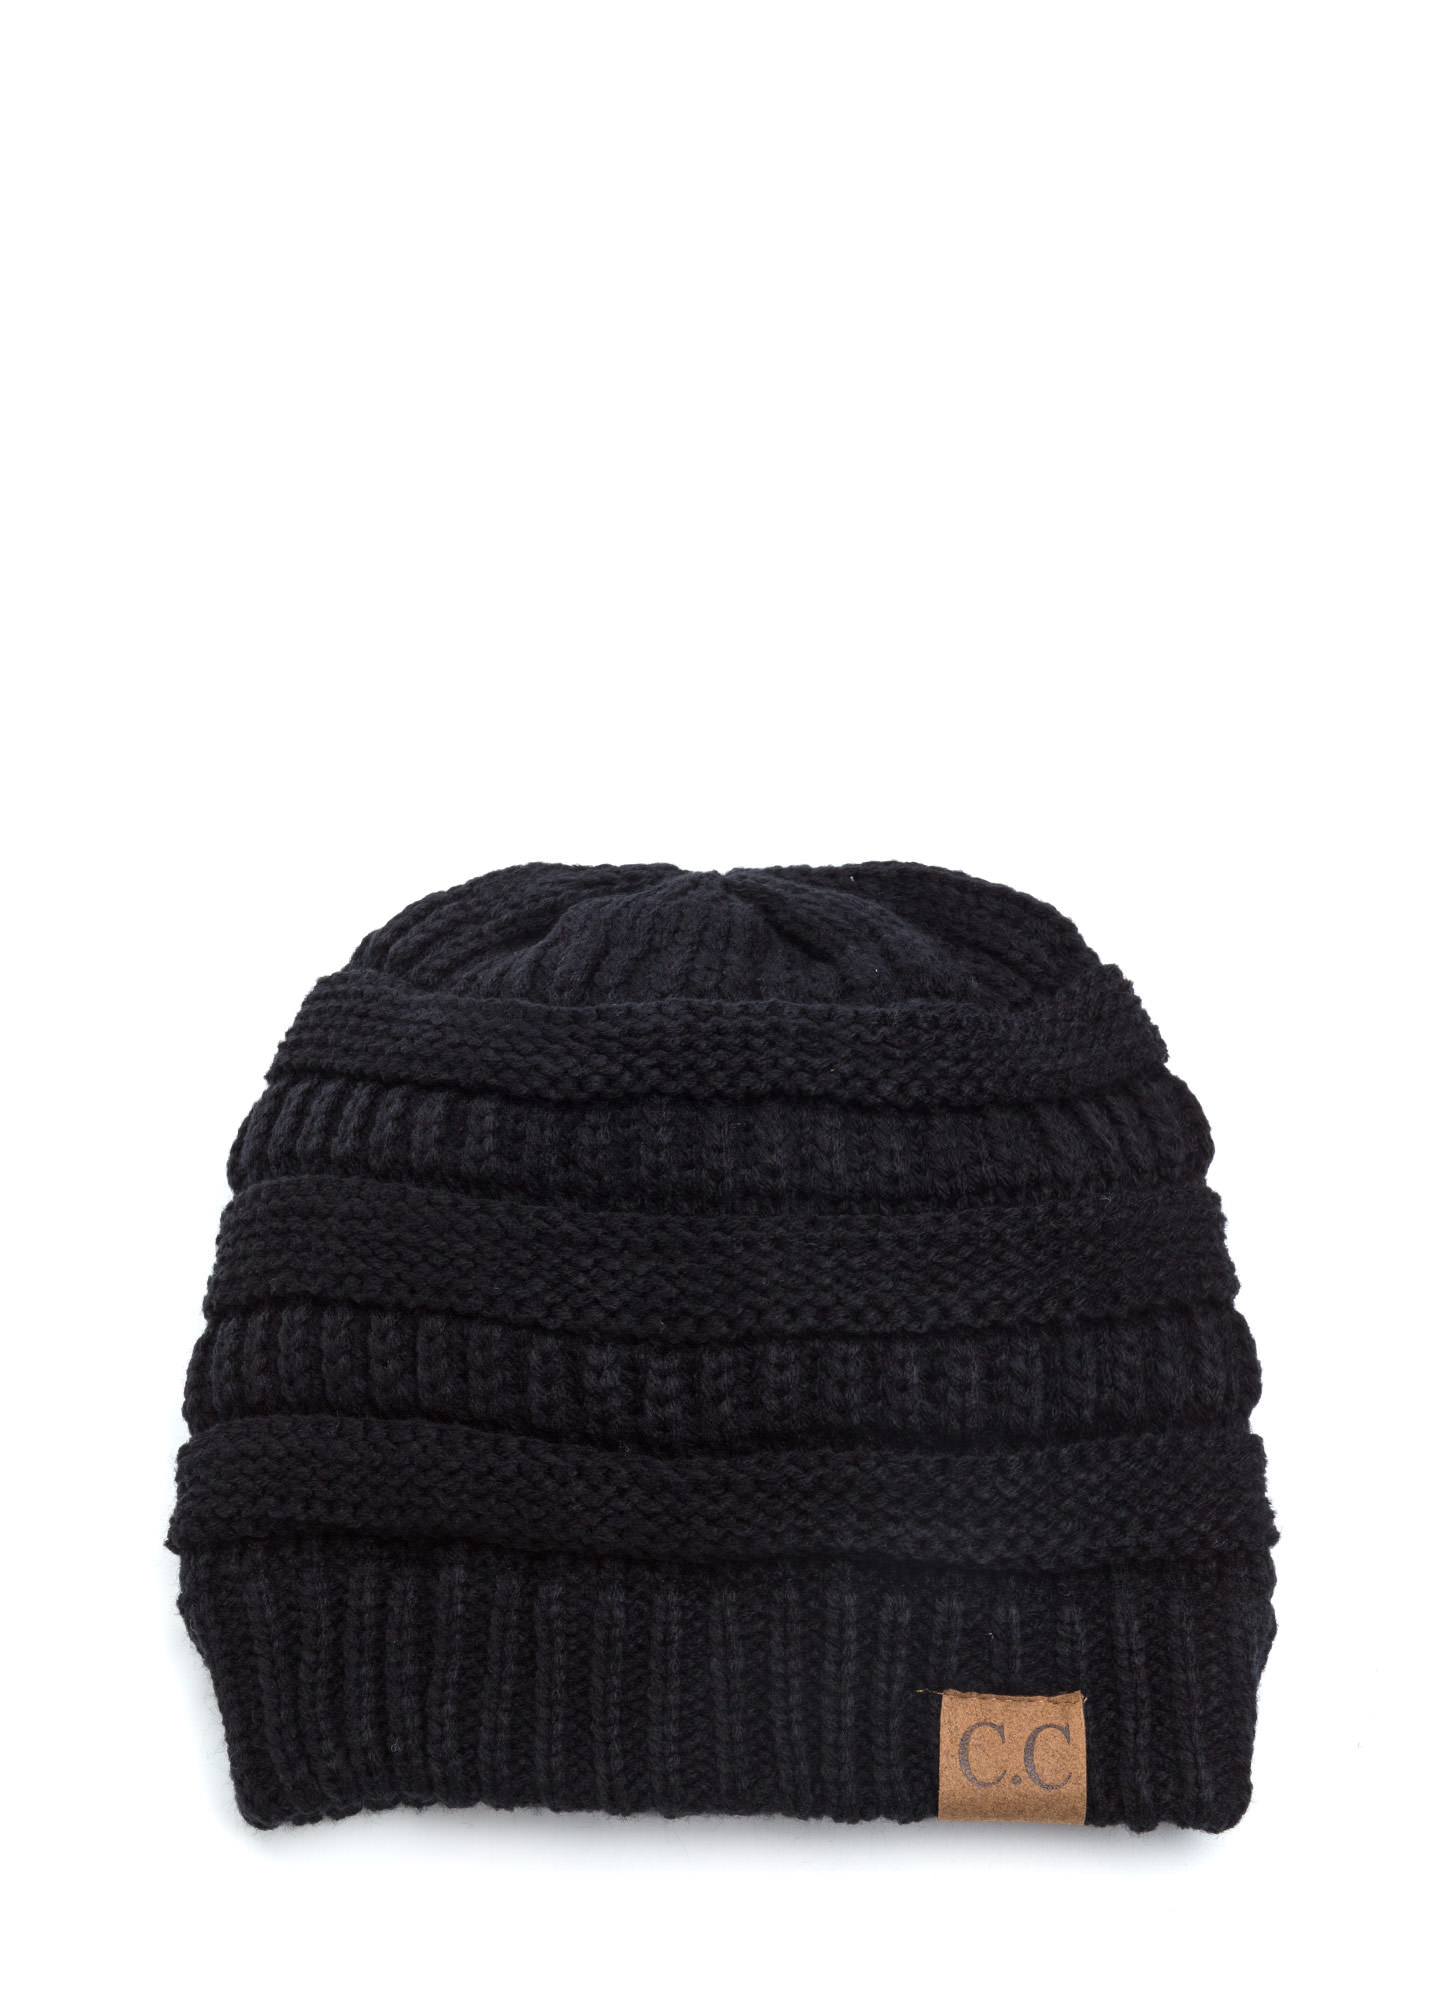 CC Cable Knit Beanie BLACK